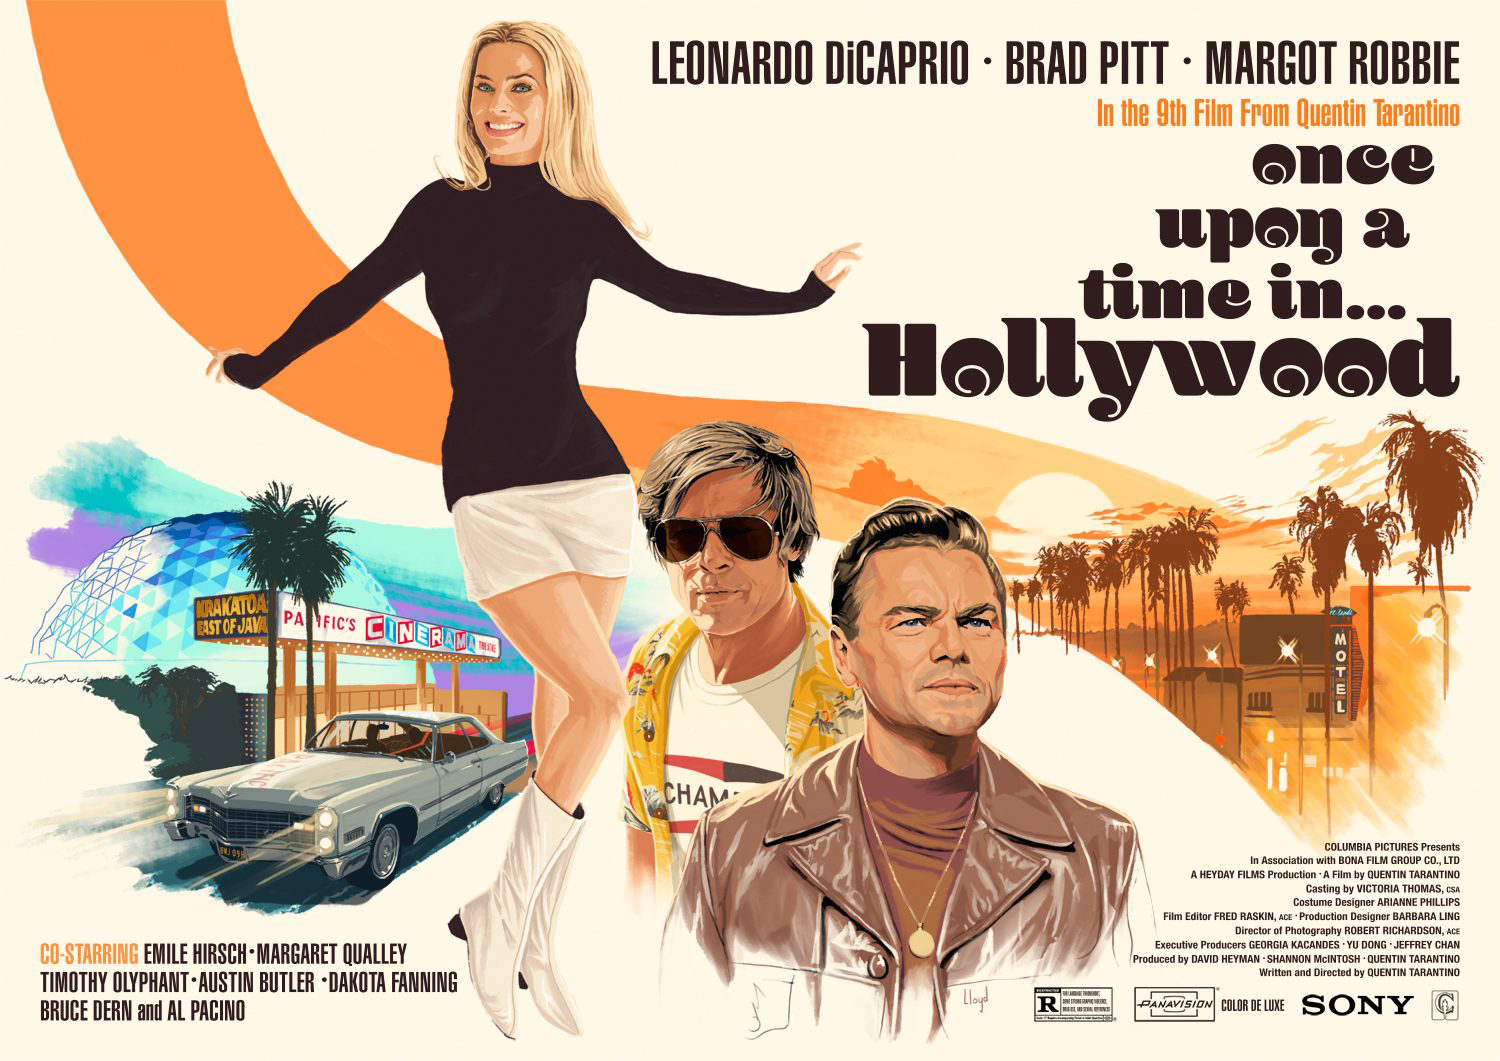 ONCE UPON A TIME IN HOLLYWOOD BRAD PITT MOVIE POSTER FILM CINEMA